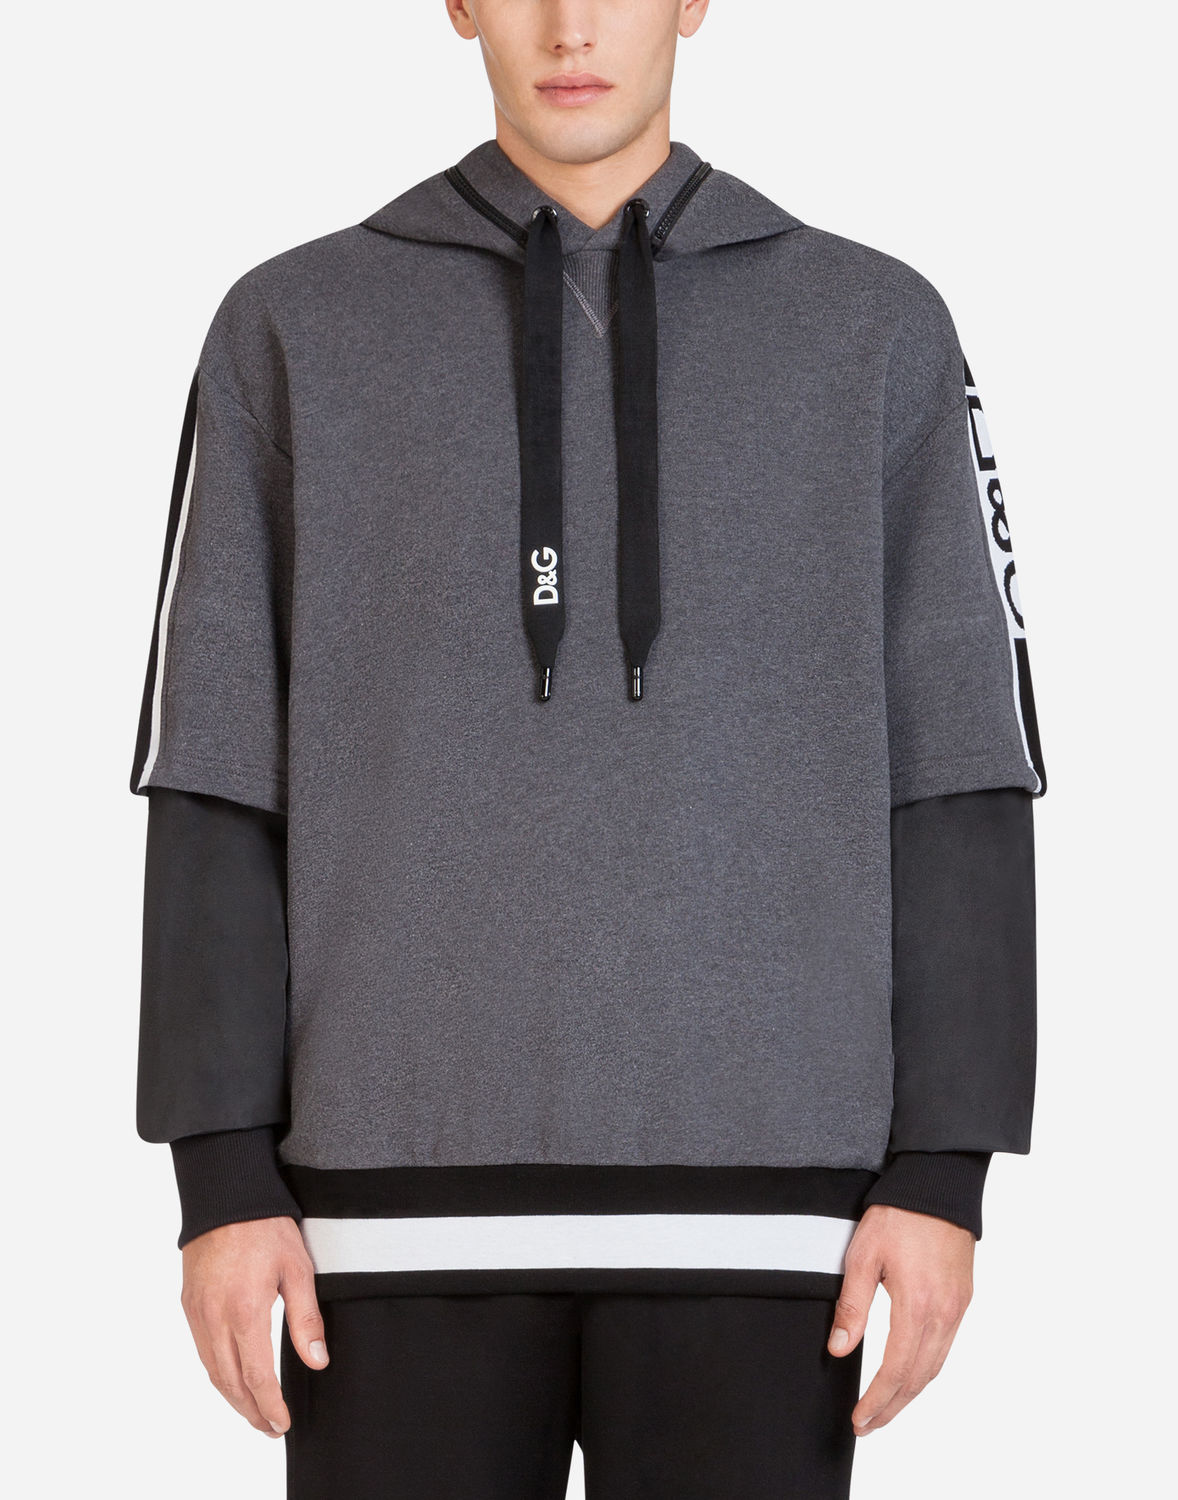 3a71344820 dolce-gabbana-clothing-cotton-hoodie-with-branded-bands-grey-dolce-gabbana-photo.jpg 1548328242